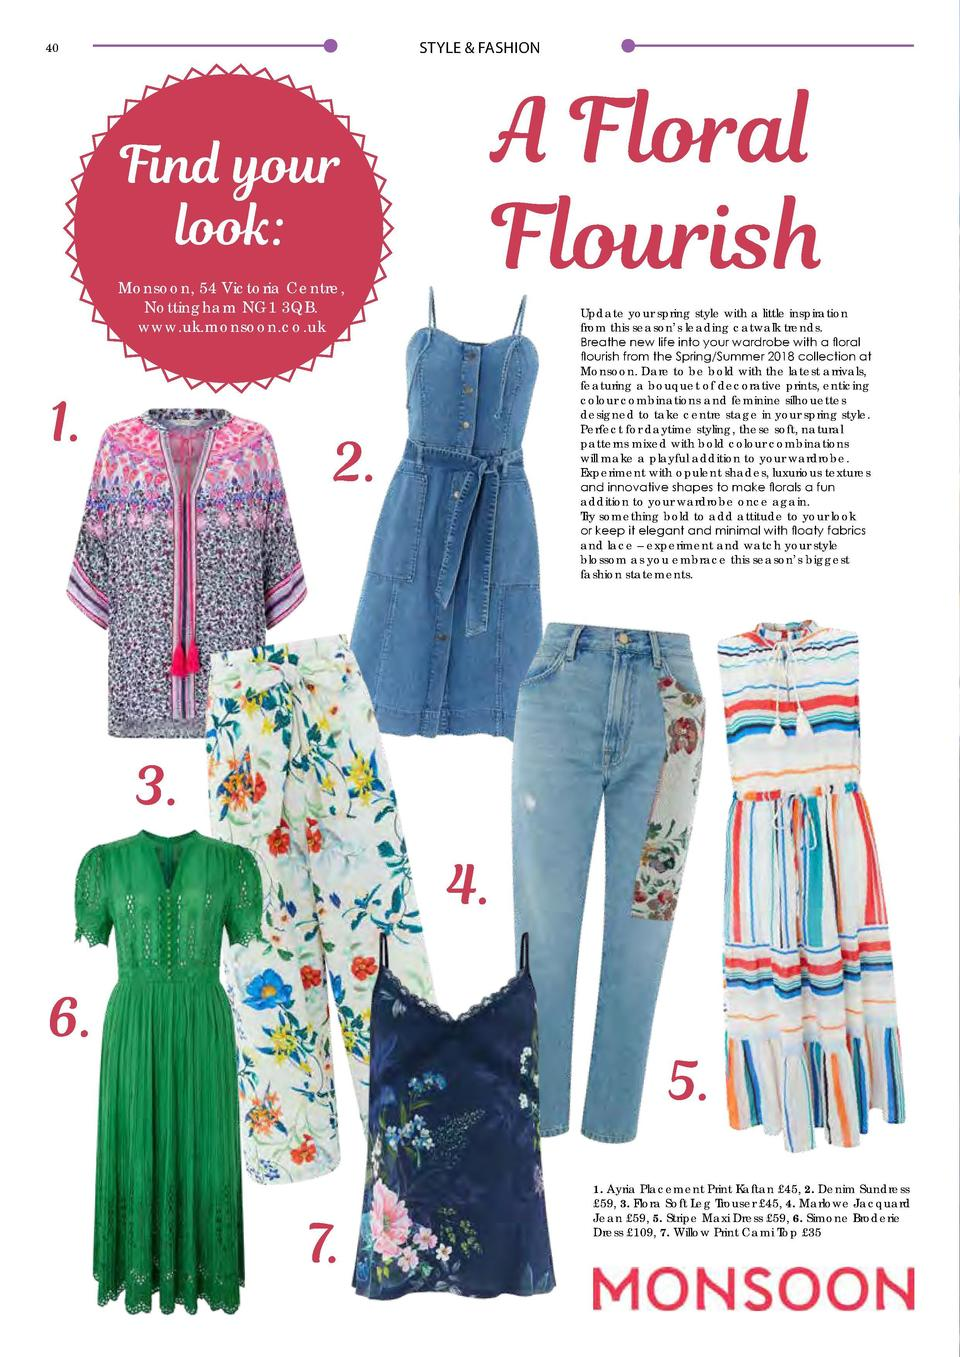 STYLE   FASHION  40  A Floral   Flourish  Find your look  Monsoon, 54 Victoria Centre, Nottingham NG1 3QB. www.uk.monsoon....